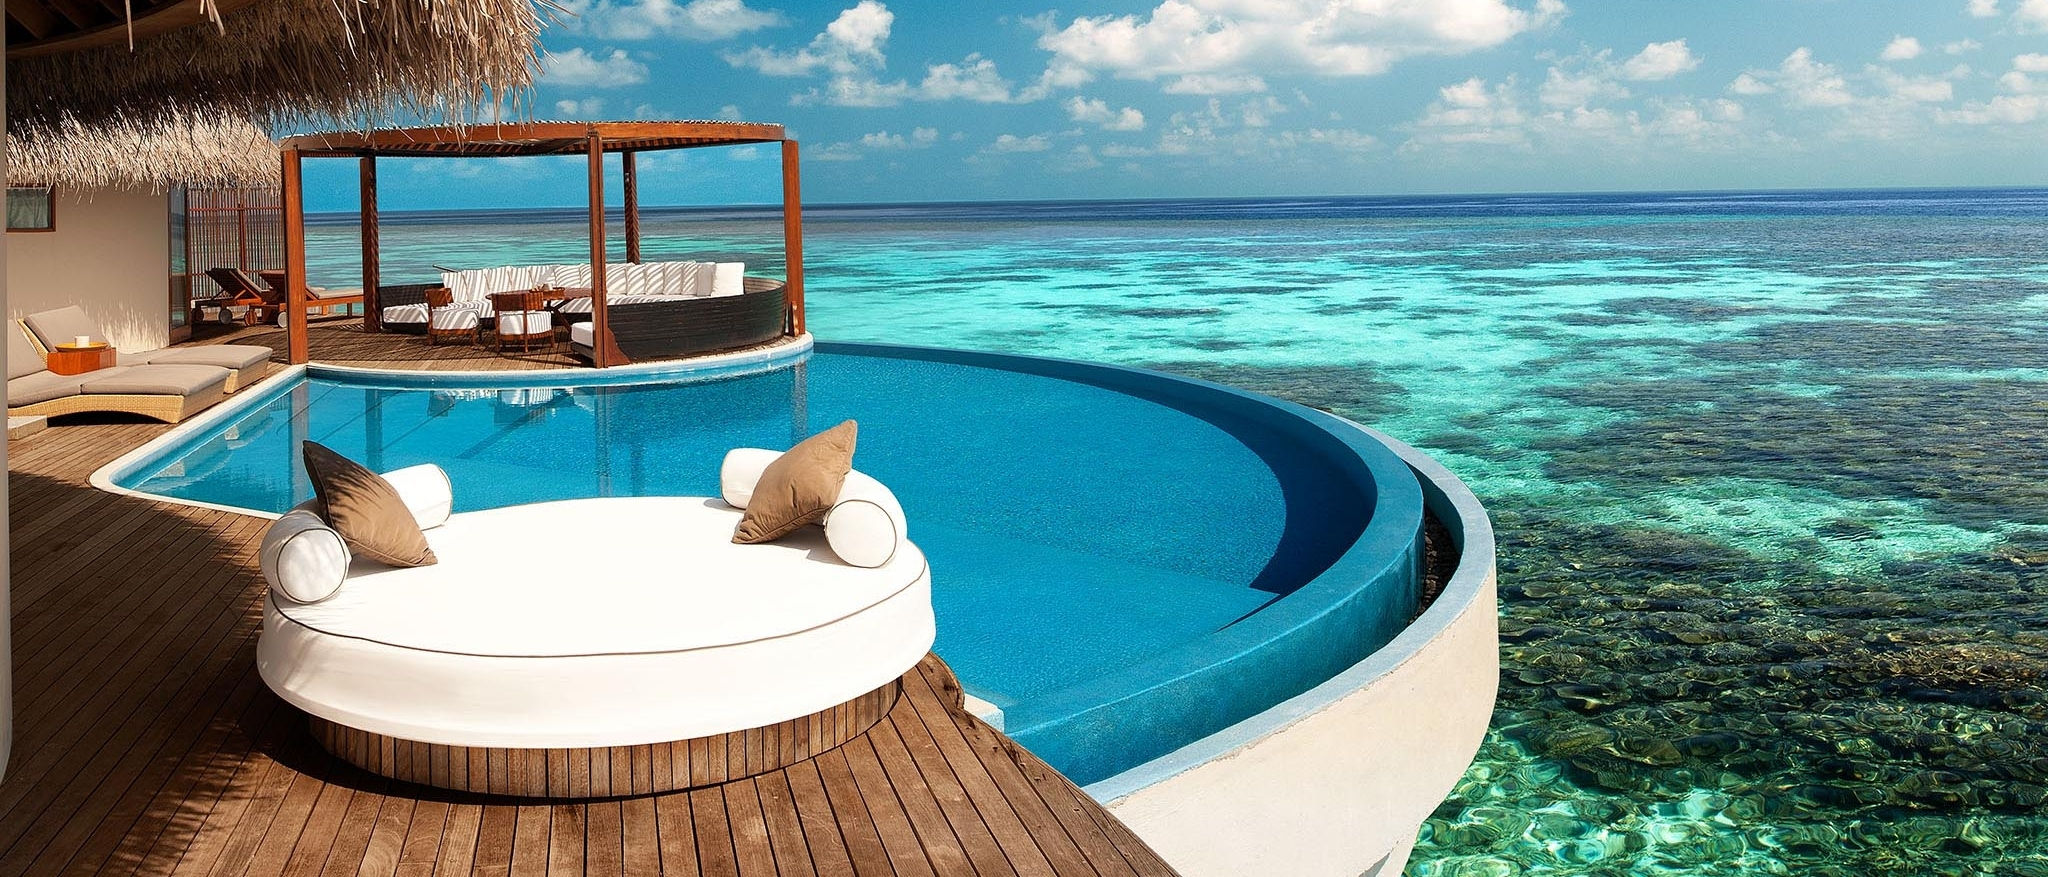 W Retreat & Spa - Maldives - Extreme Wow Ocean Haven Private Pool